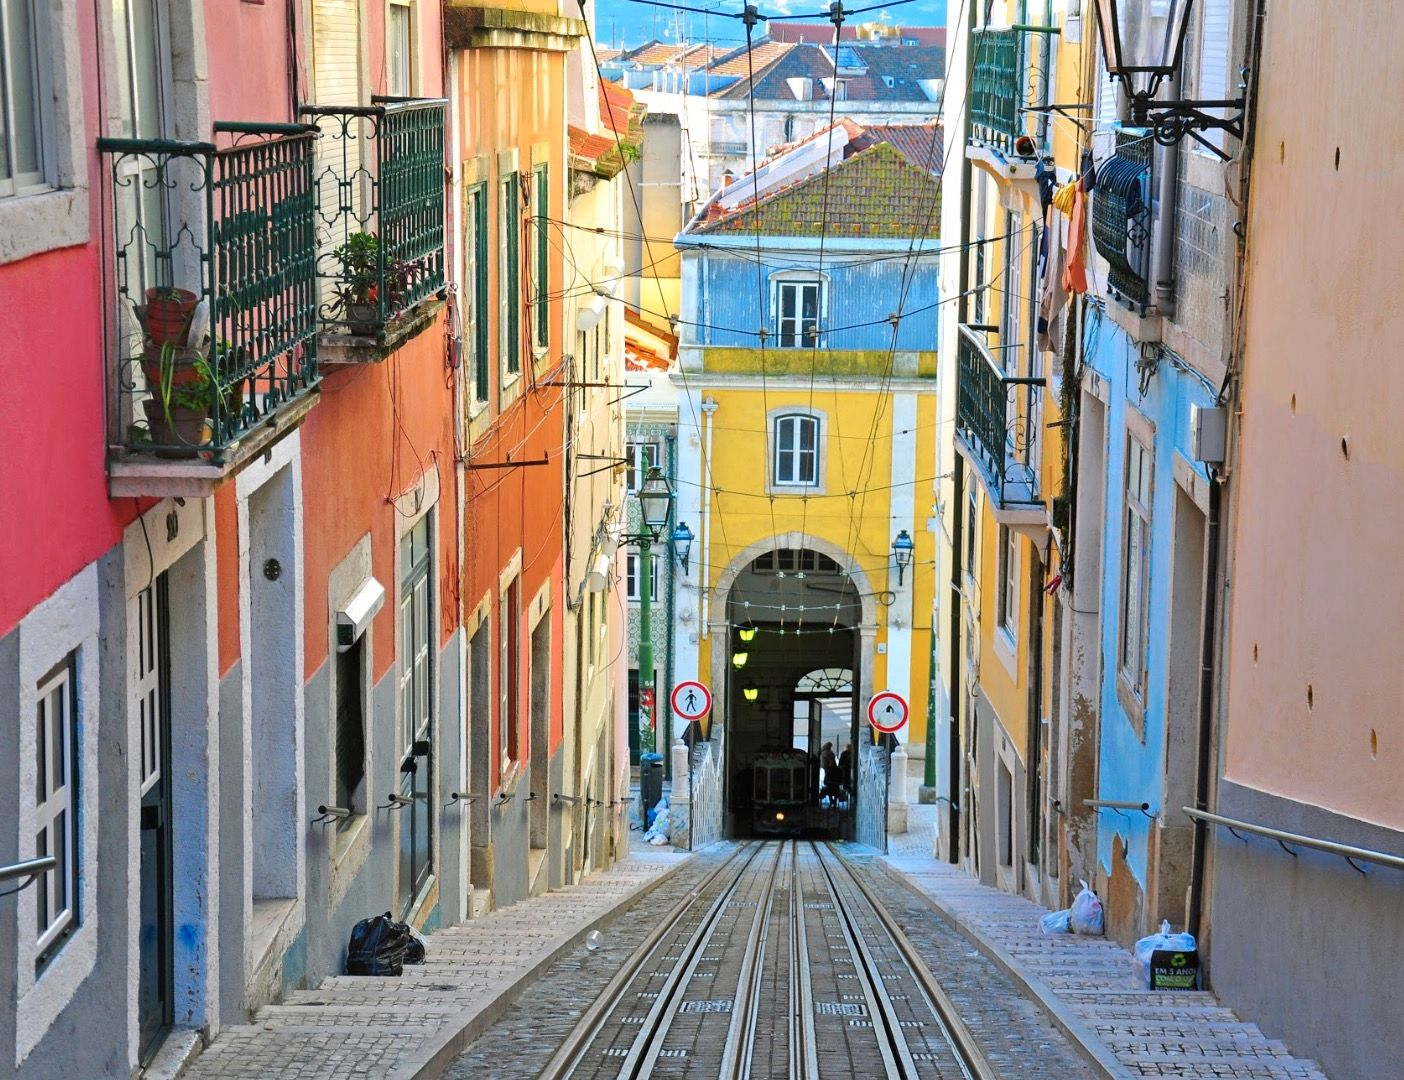 Funiculaire, Lisbonne - Portugal ©Istock